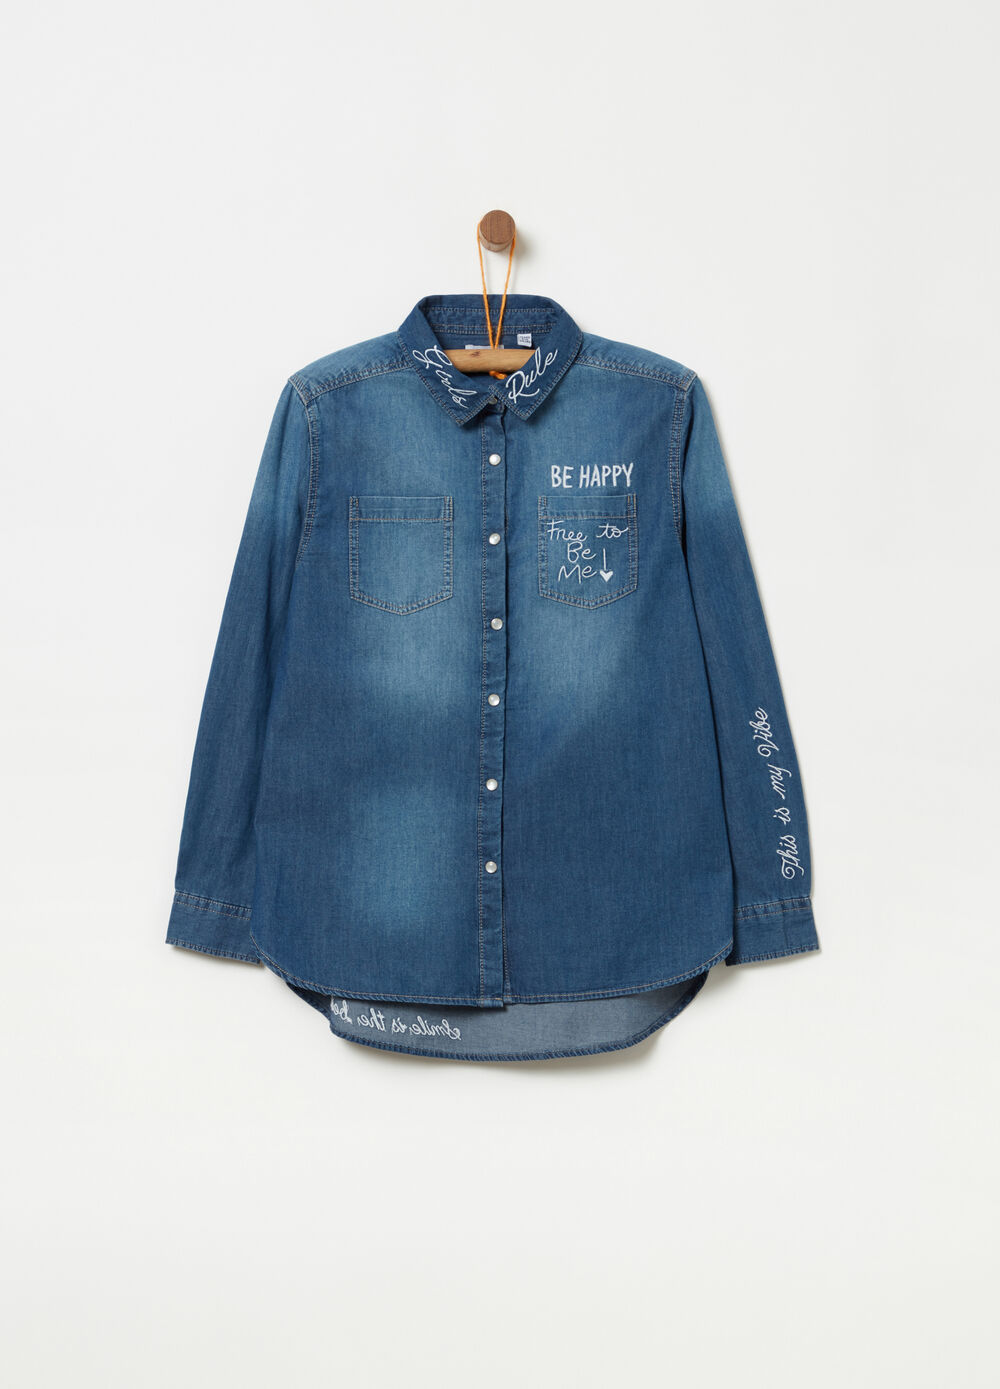 Cotton chambray shirt with embroidery